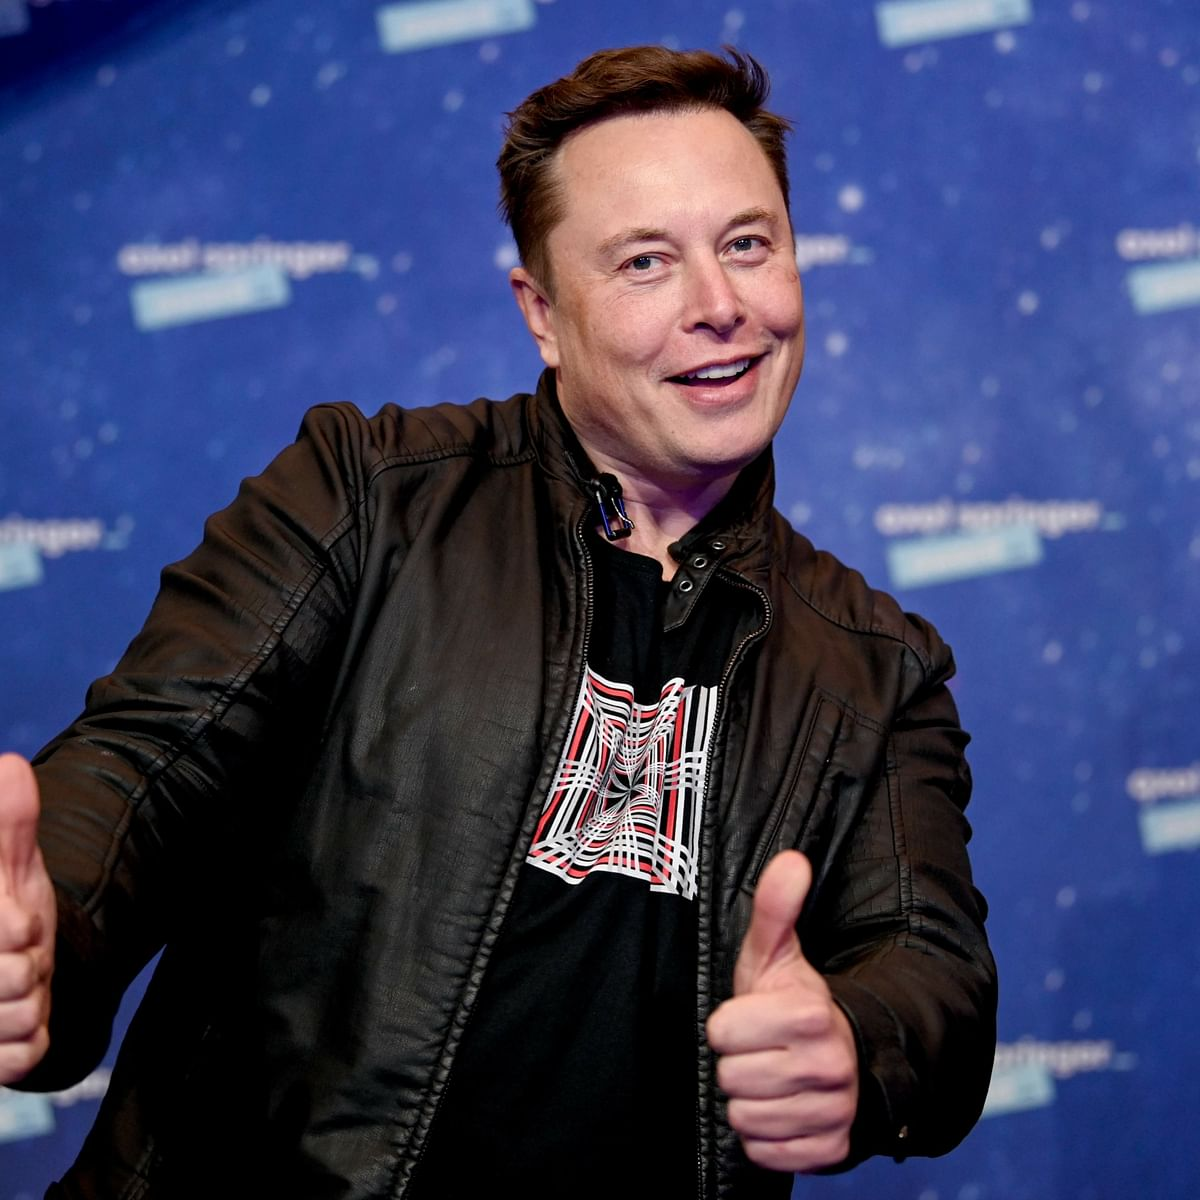 Irate netizen hits out at Elon Musk over plummeting Tesla stock price, he responds with a single emoji